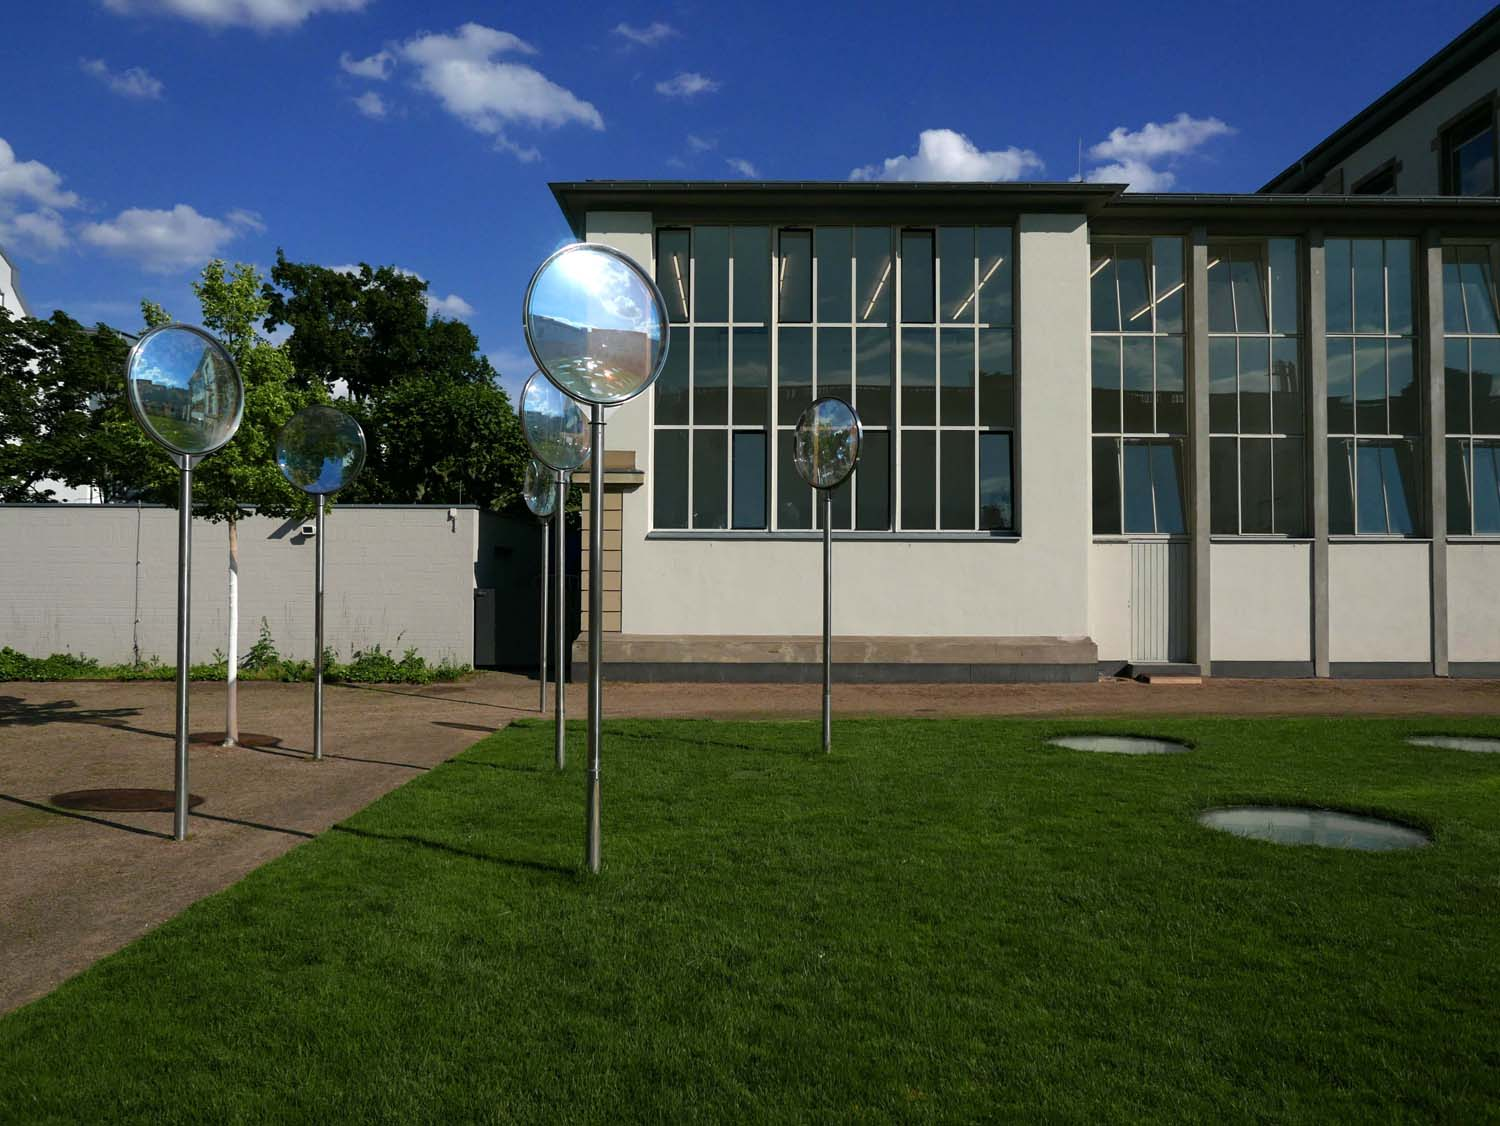 Part of the Städelschule (Städel art school) with the skylights of the contemporary galleries visible in the grass